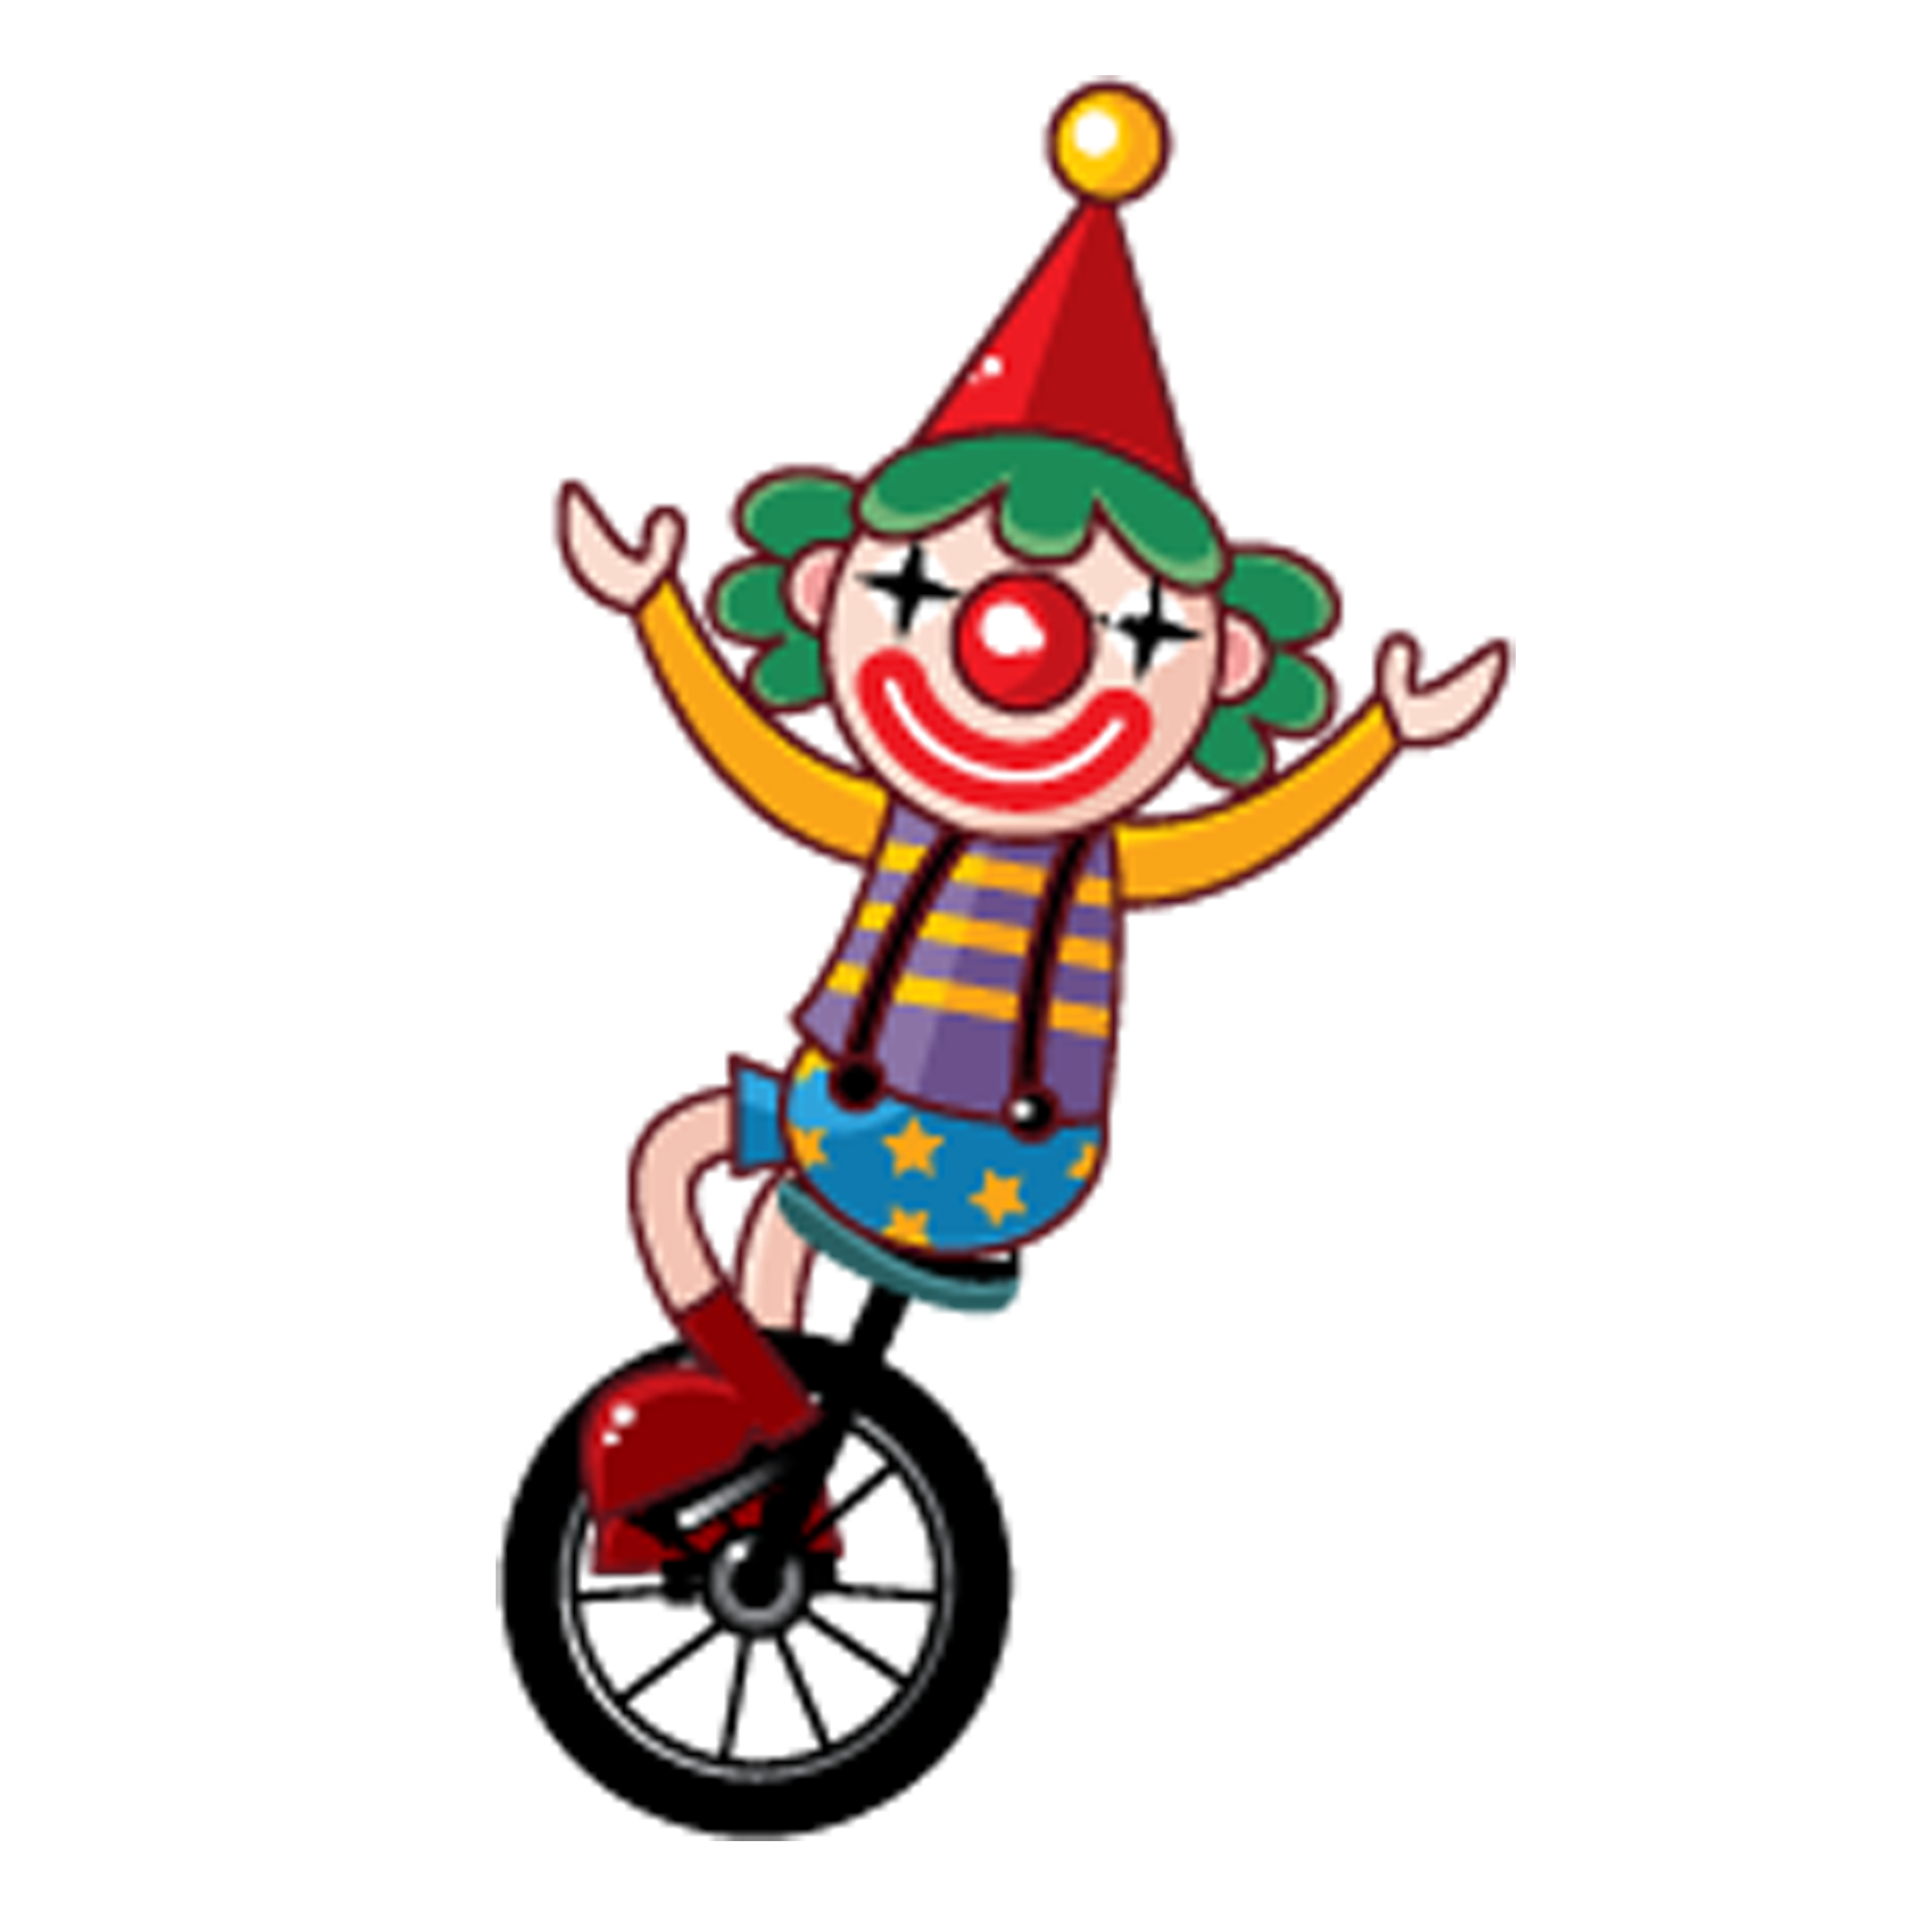 Pennywise the clown drawing png vector. Circus cartoon illustration transprent